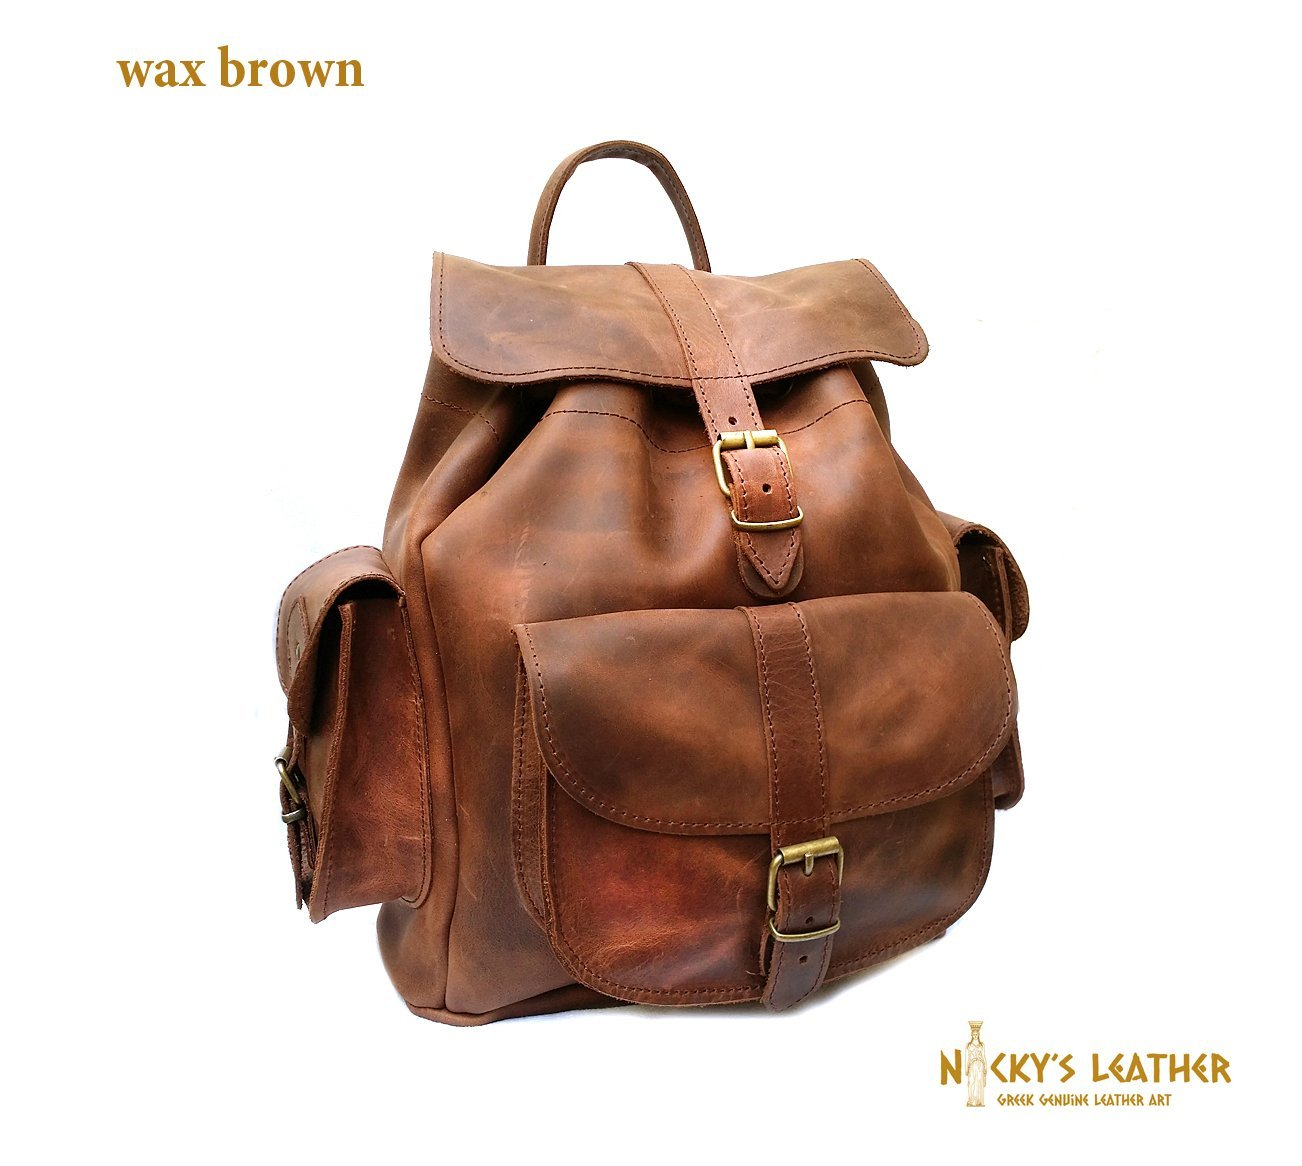 LEATHER BACKPACK from Real Full Grain Waxed Leather